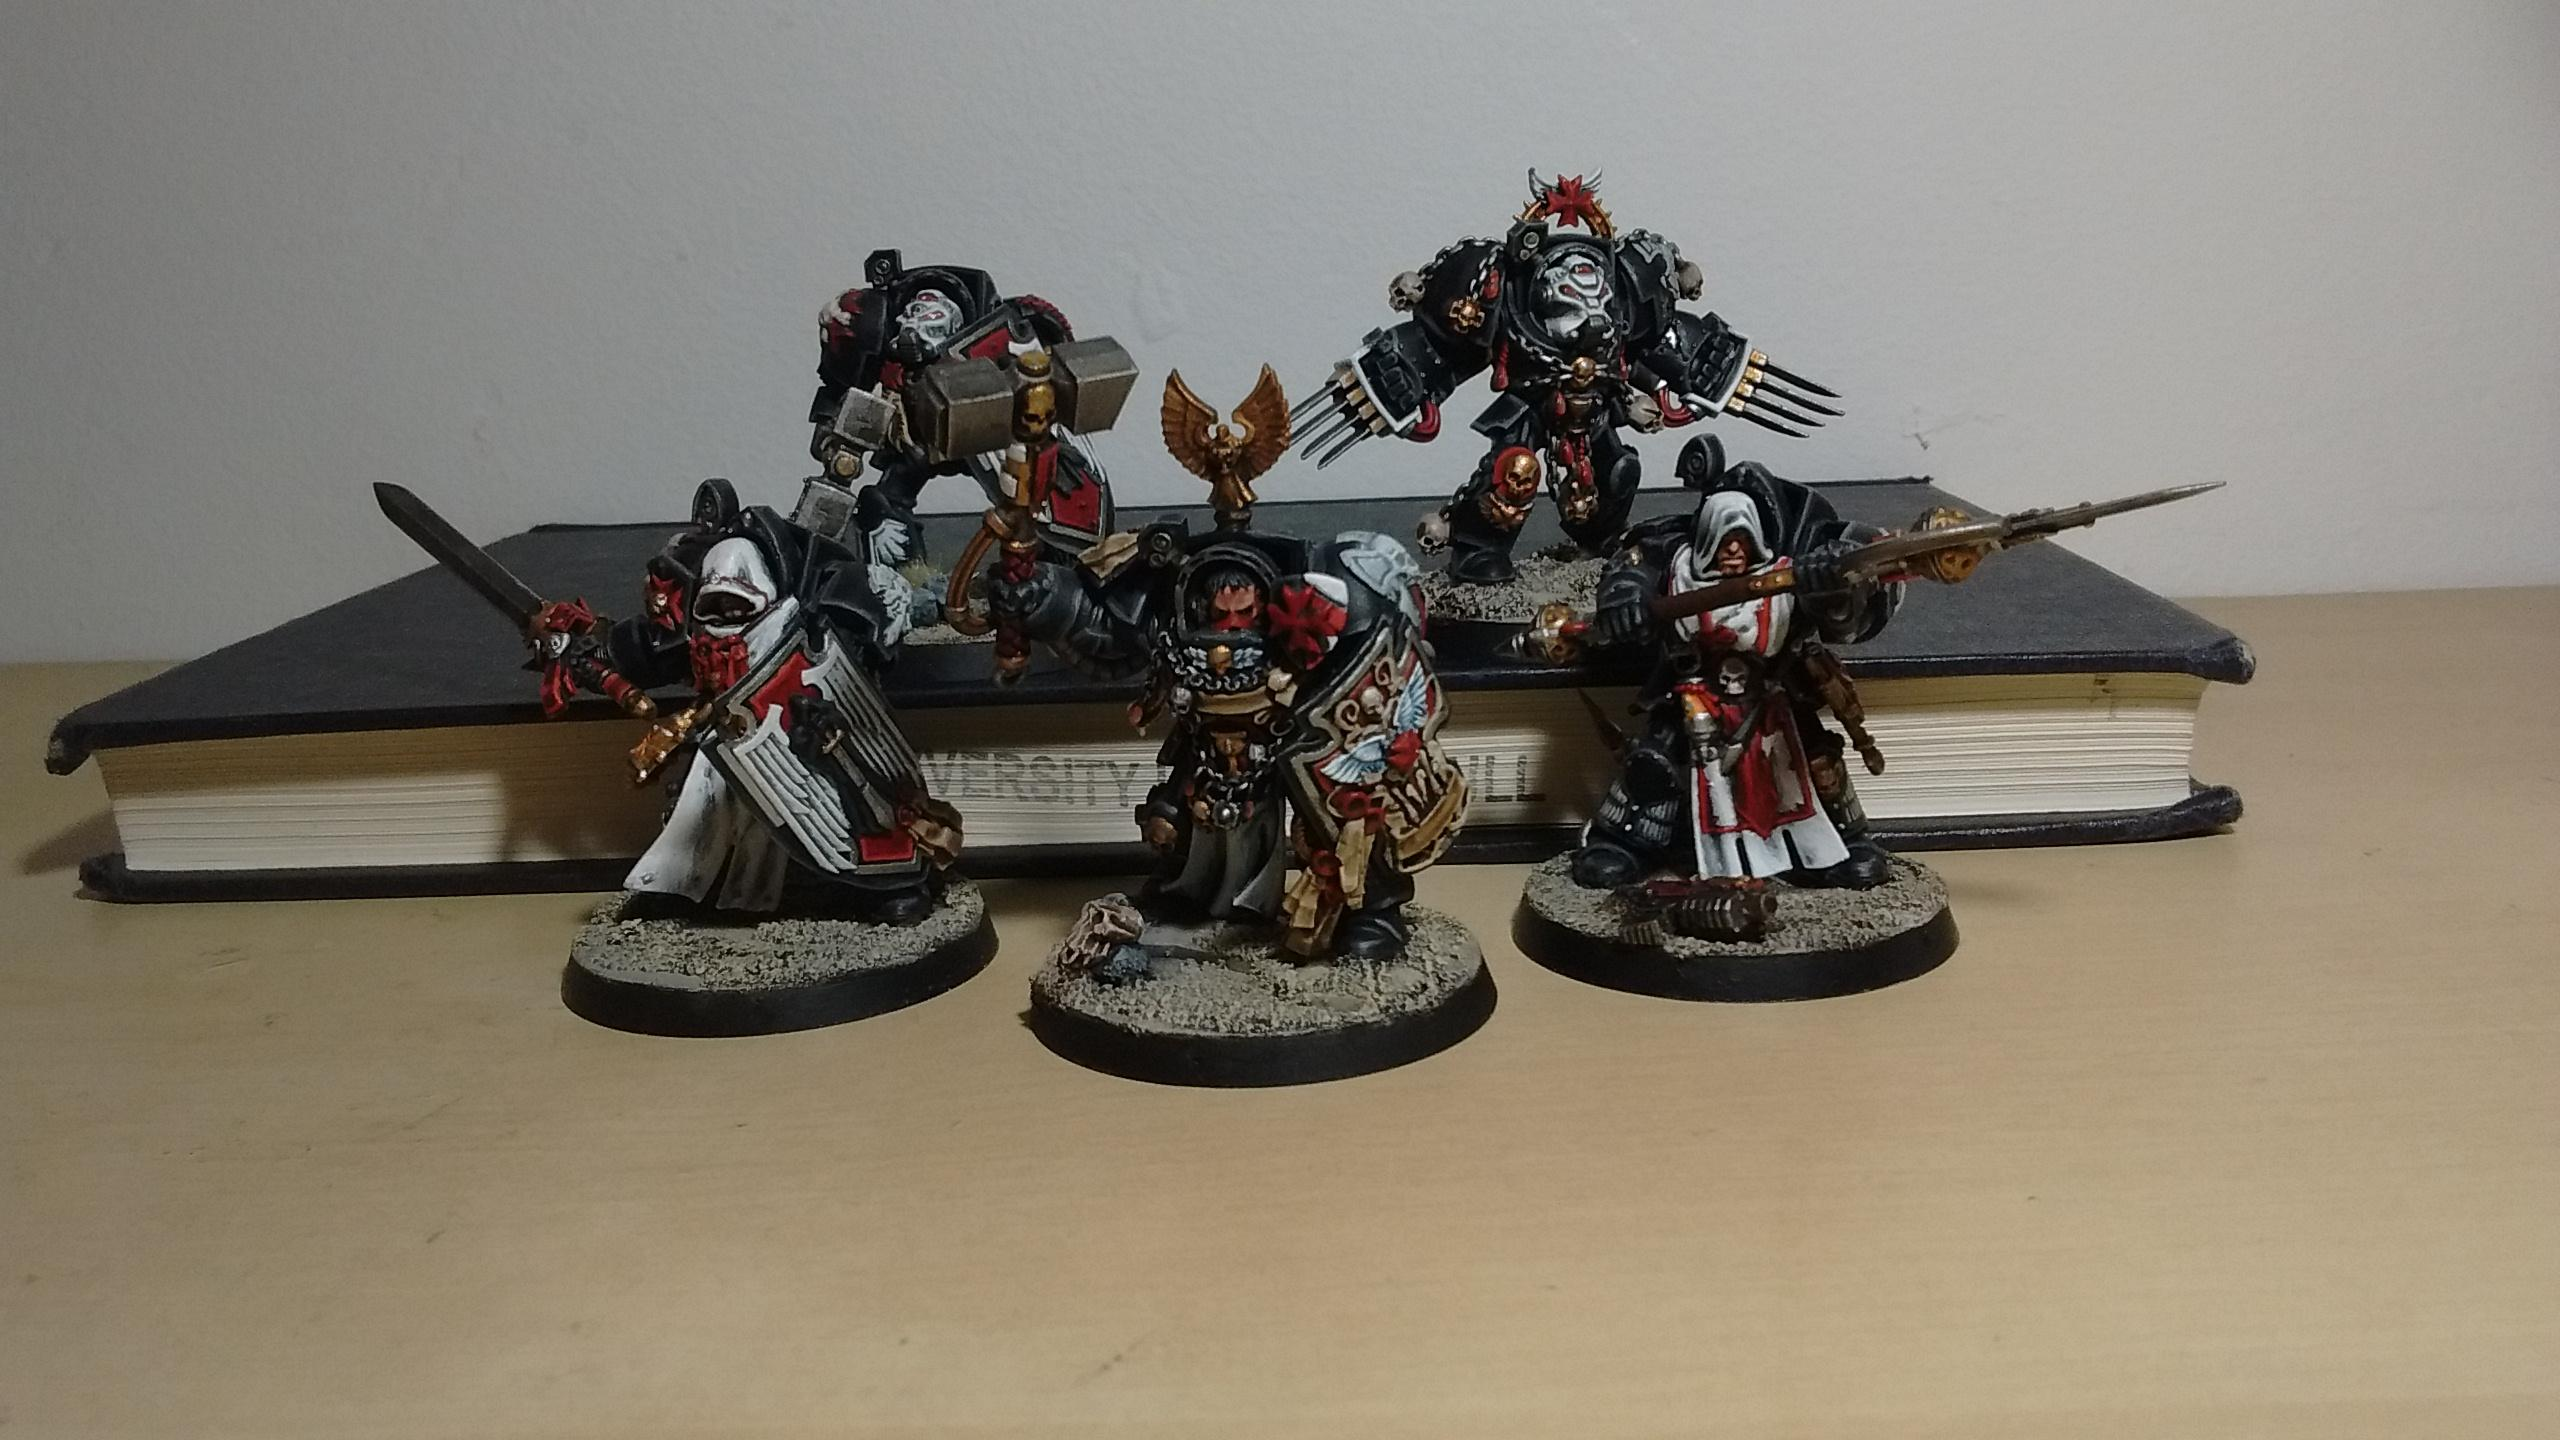 Assault, Black, Black Templars, Blanche, Blood Angels, Chainsword, Conversion, Dark Angels, Deathwing, Forge World, Imperium, Space Hulk, Space Marines, Sword Brother, Tactical Squad, Templars, Terminator Armor, Thunder Hammer